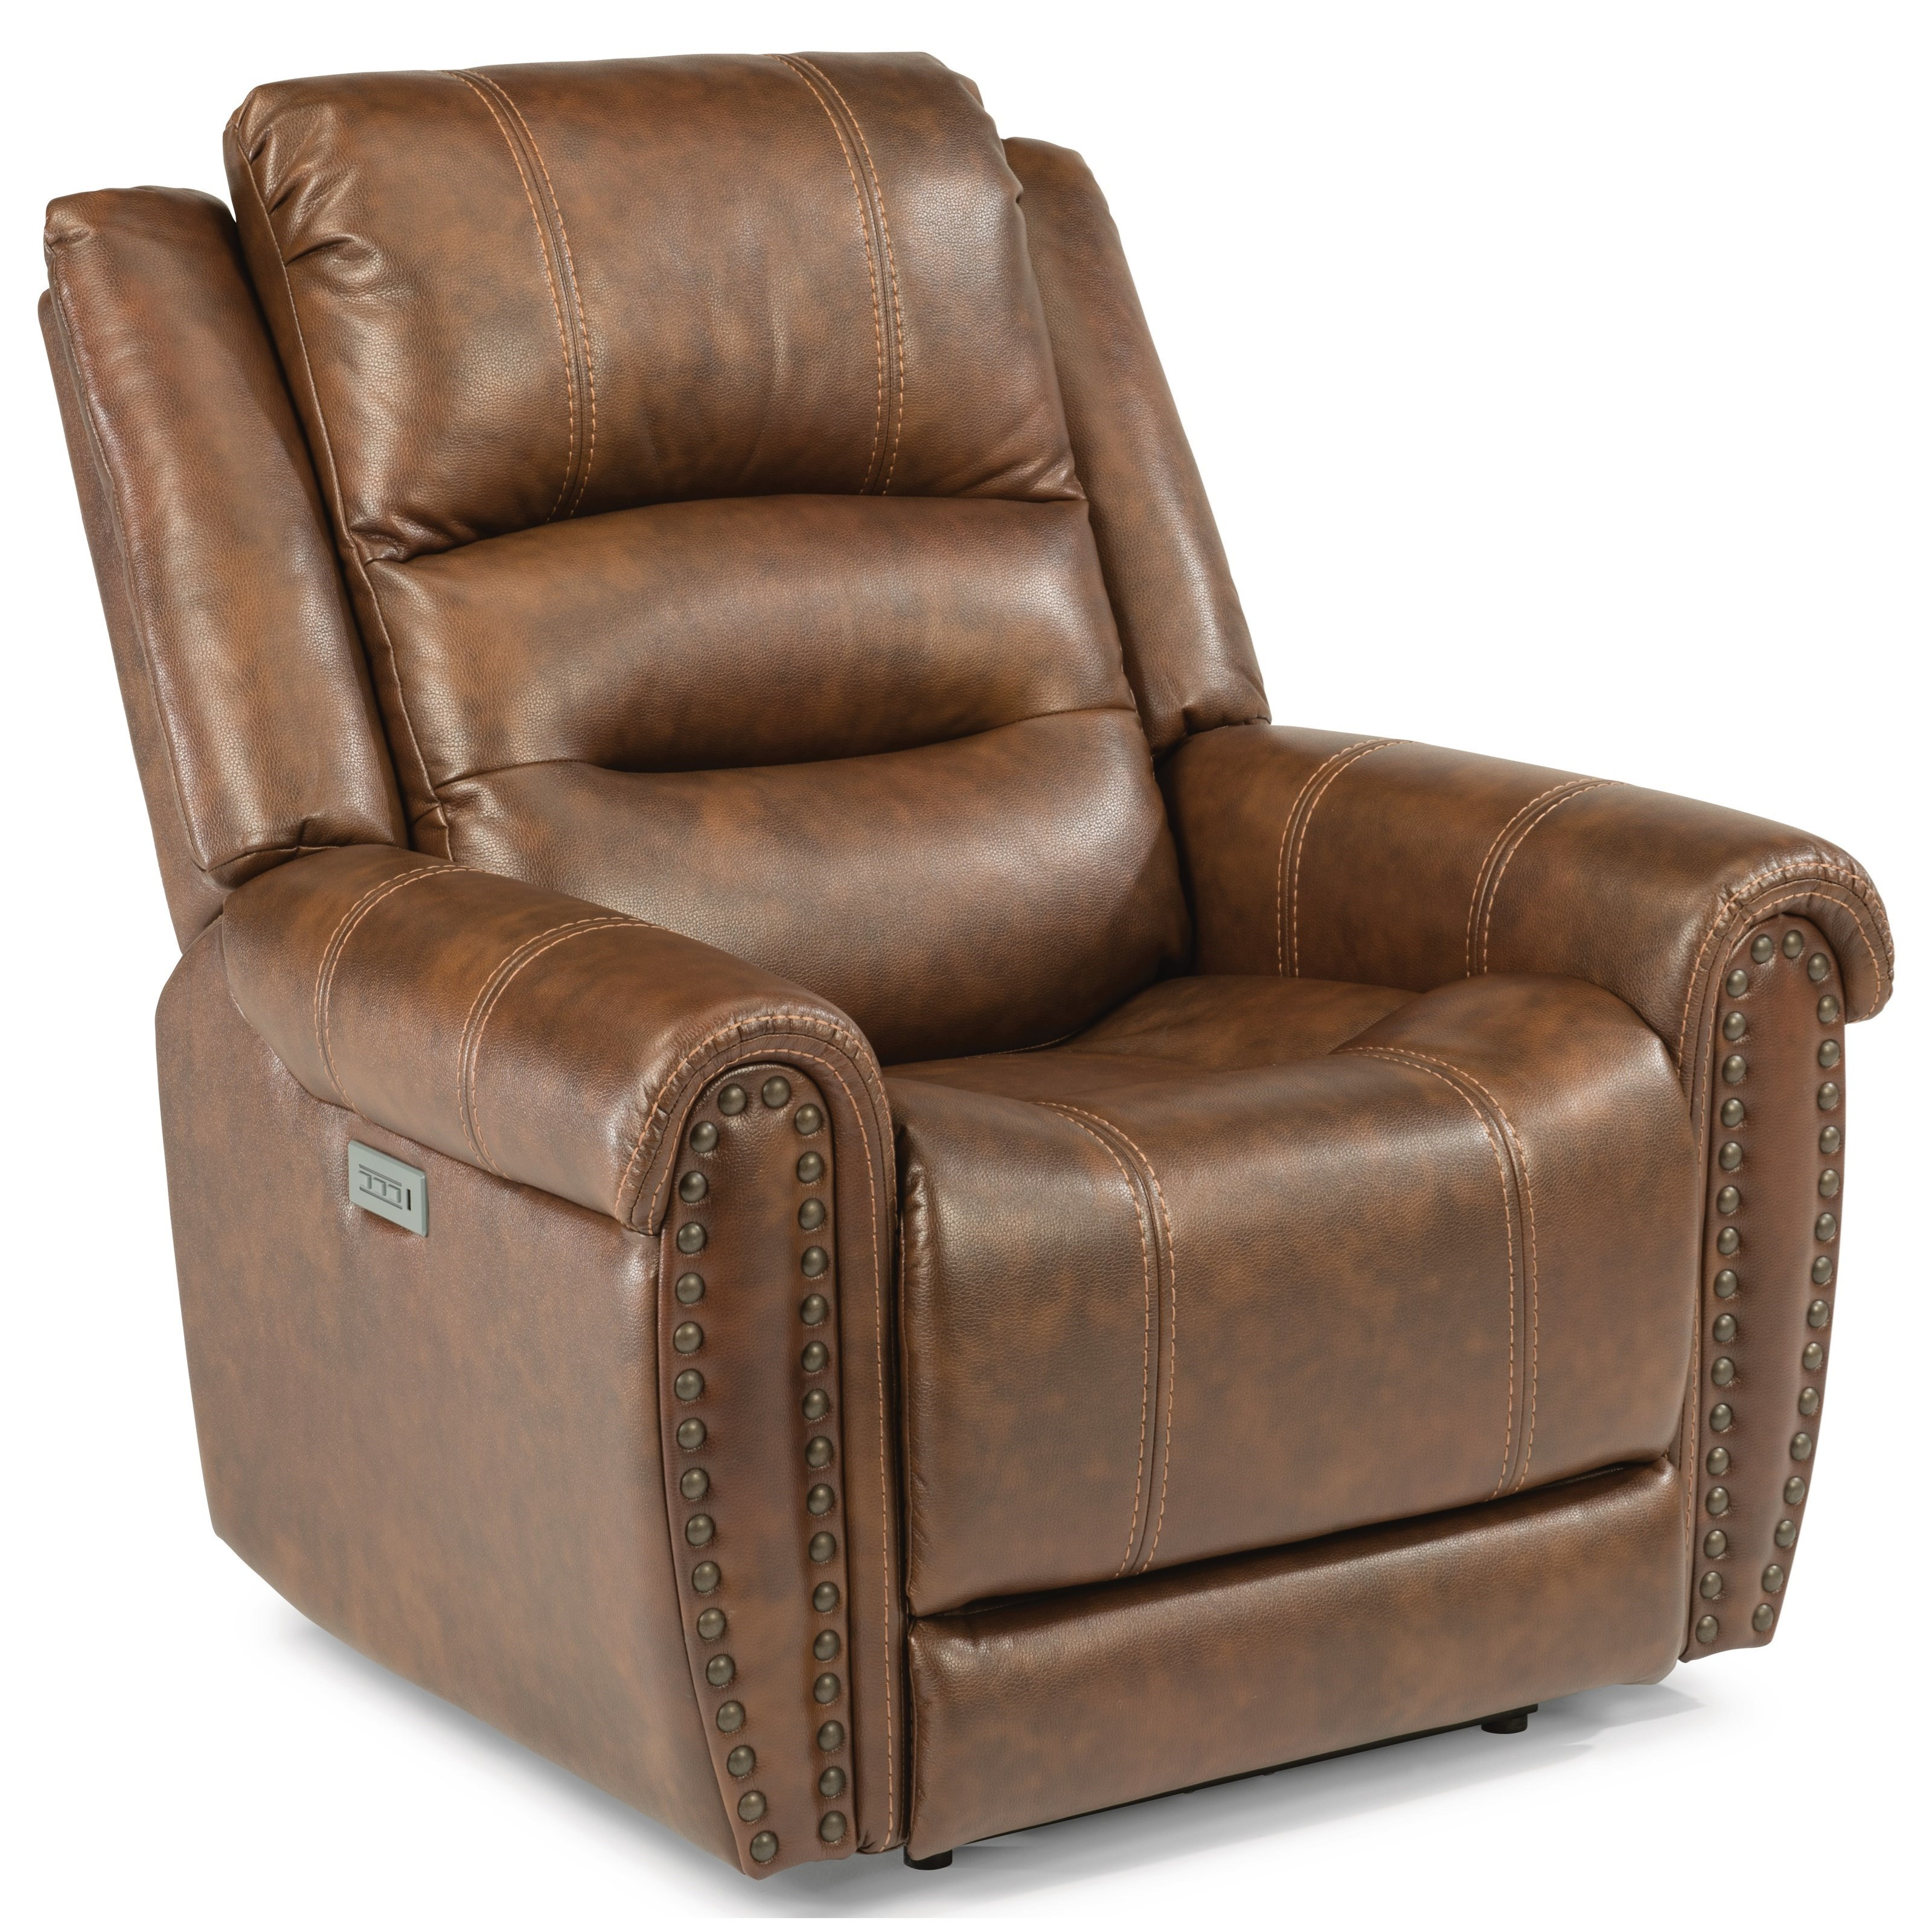 Latitudes - Oscar Power Recliner with Power Headrest and Lumbar Support by  Flexsteel